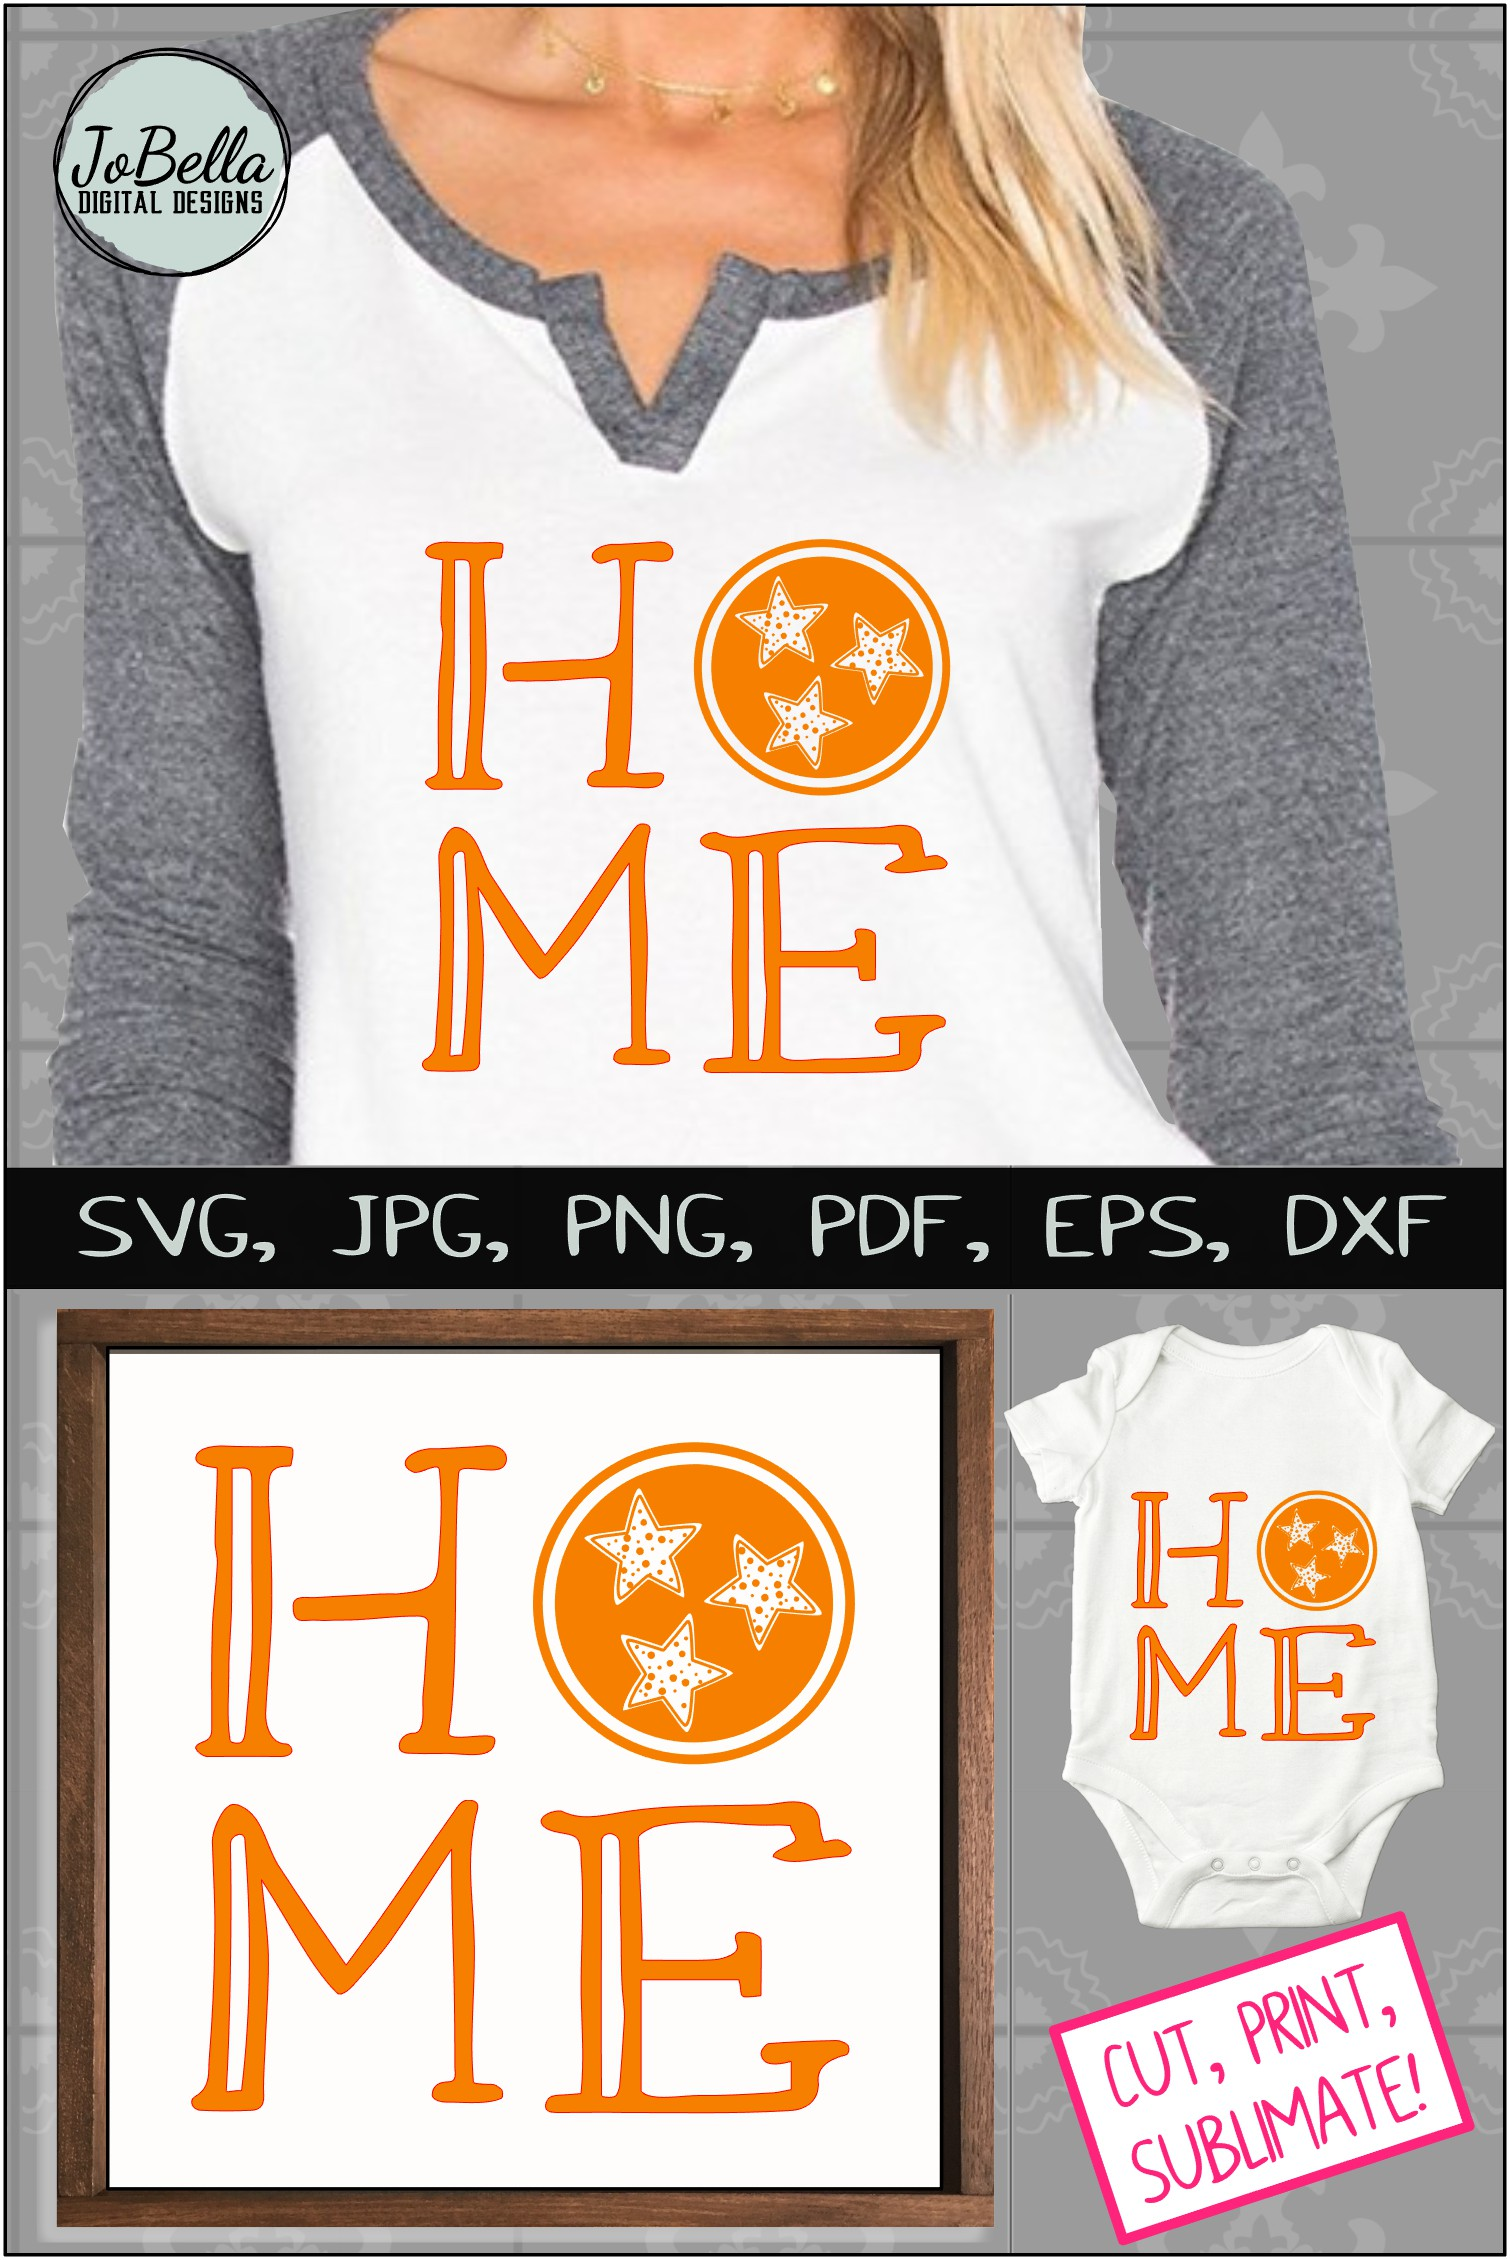 Home with Polka Dot TriStar SVG, Sublimation PNG & Printable example image 5